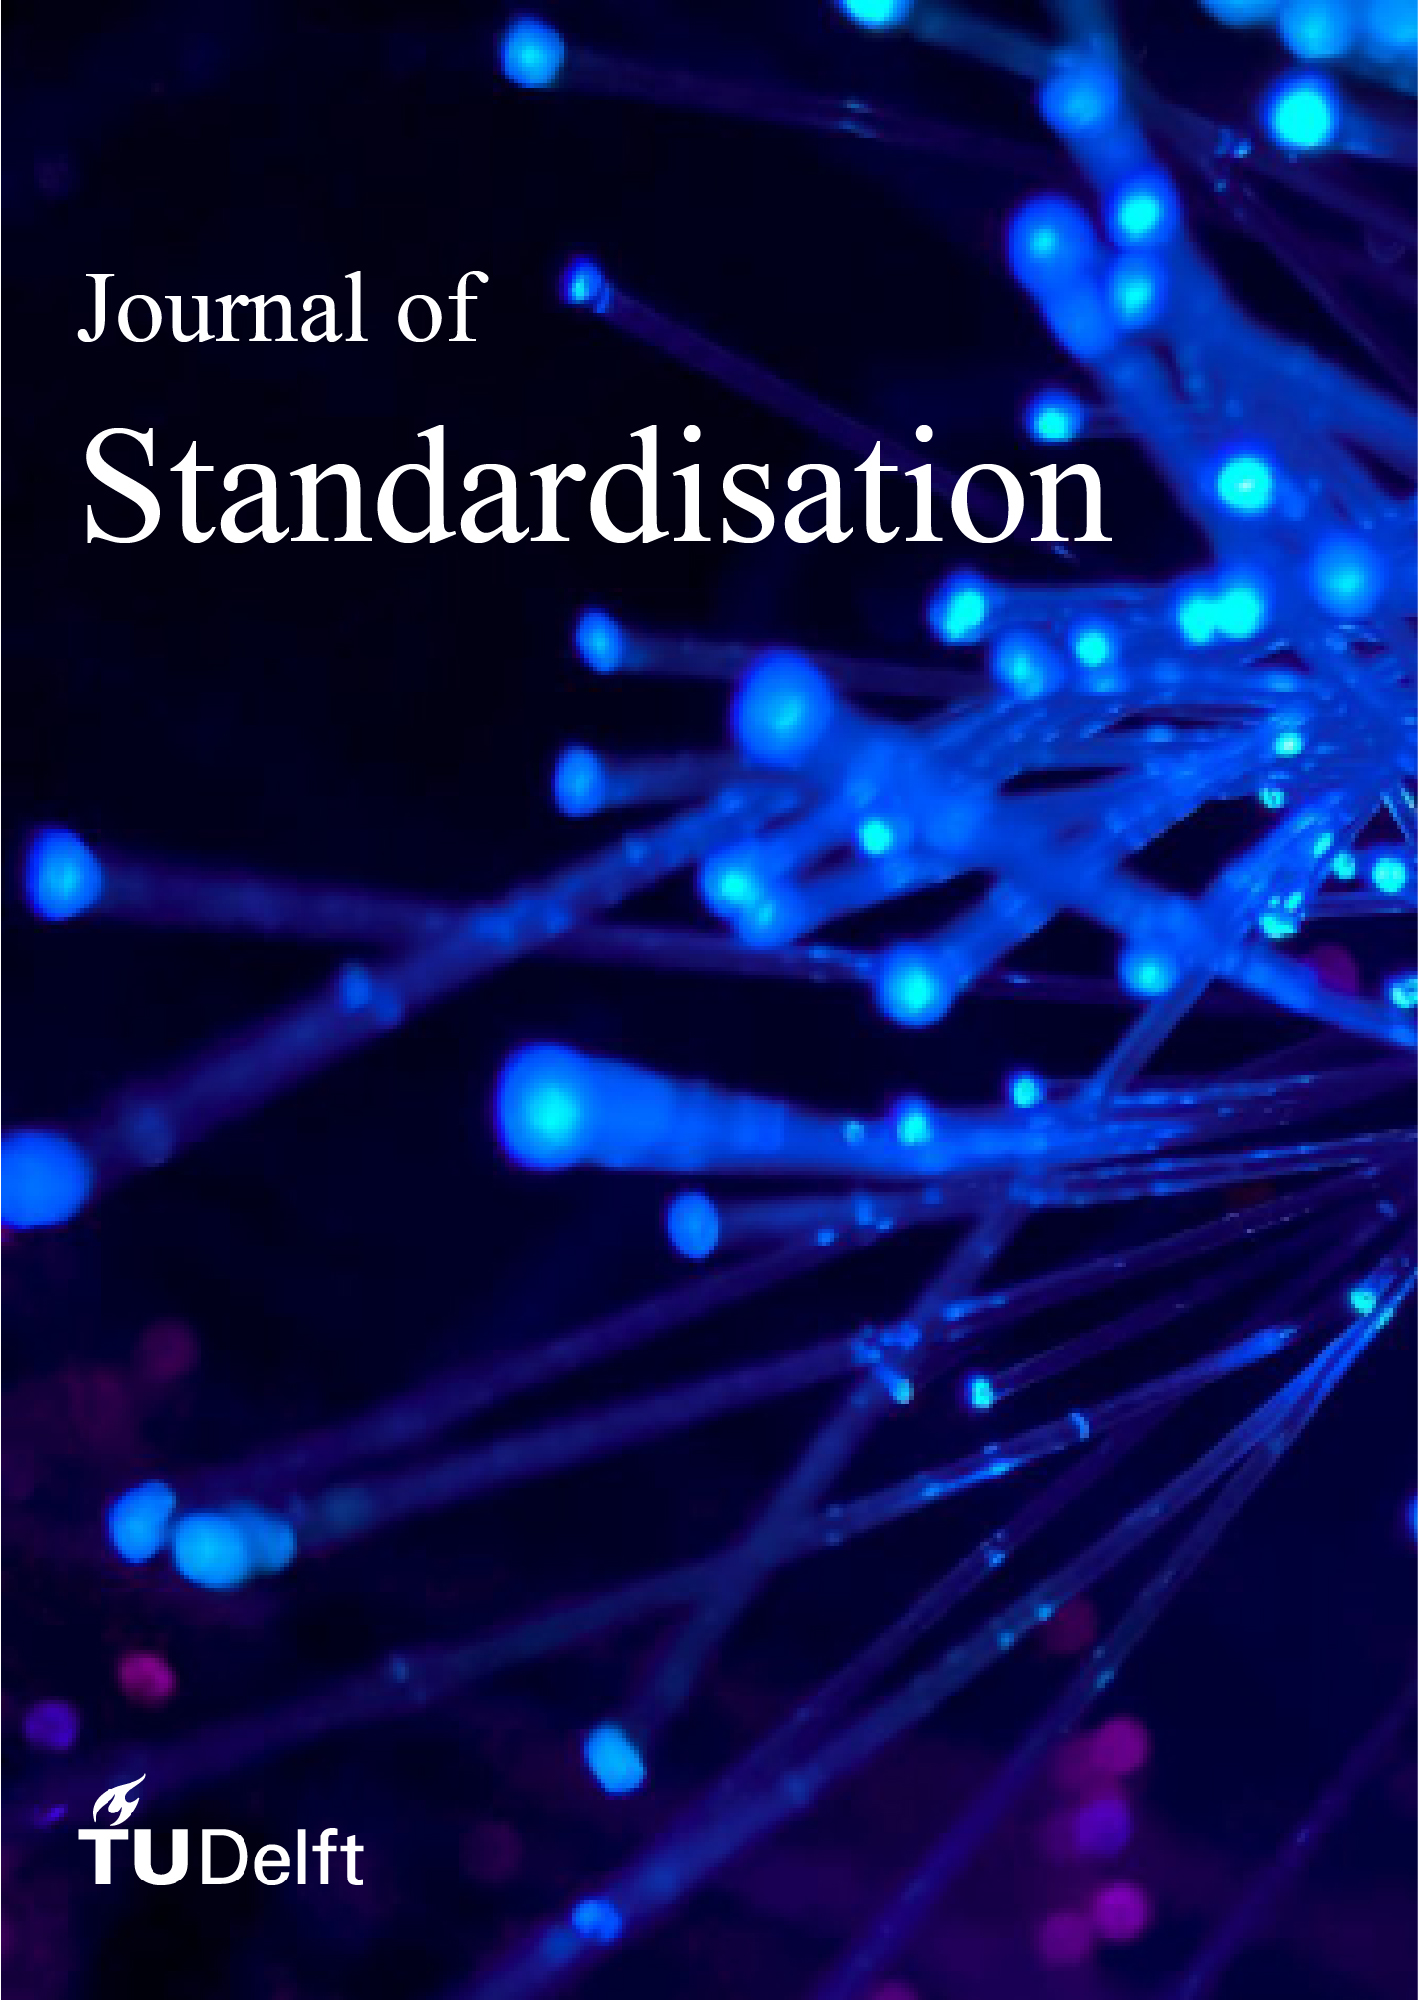 image of the cover of the Journal of Standardisation